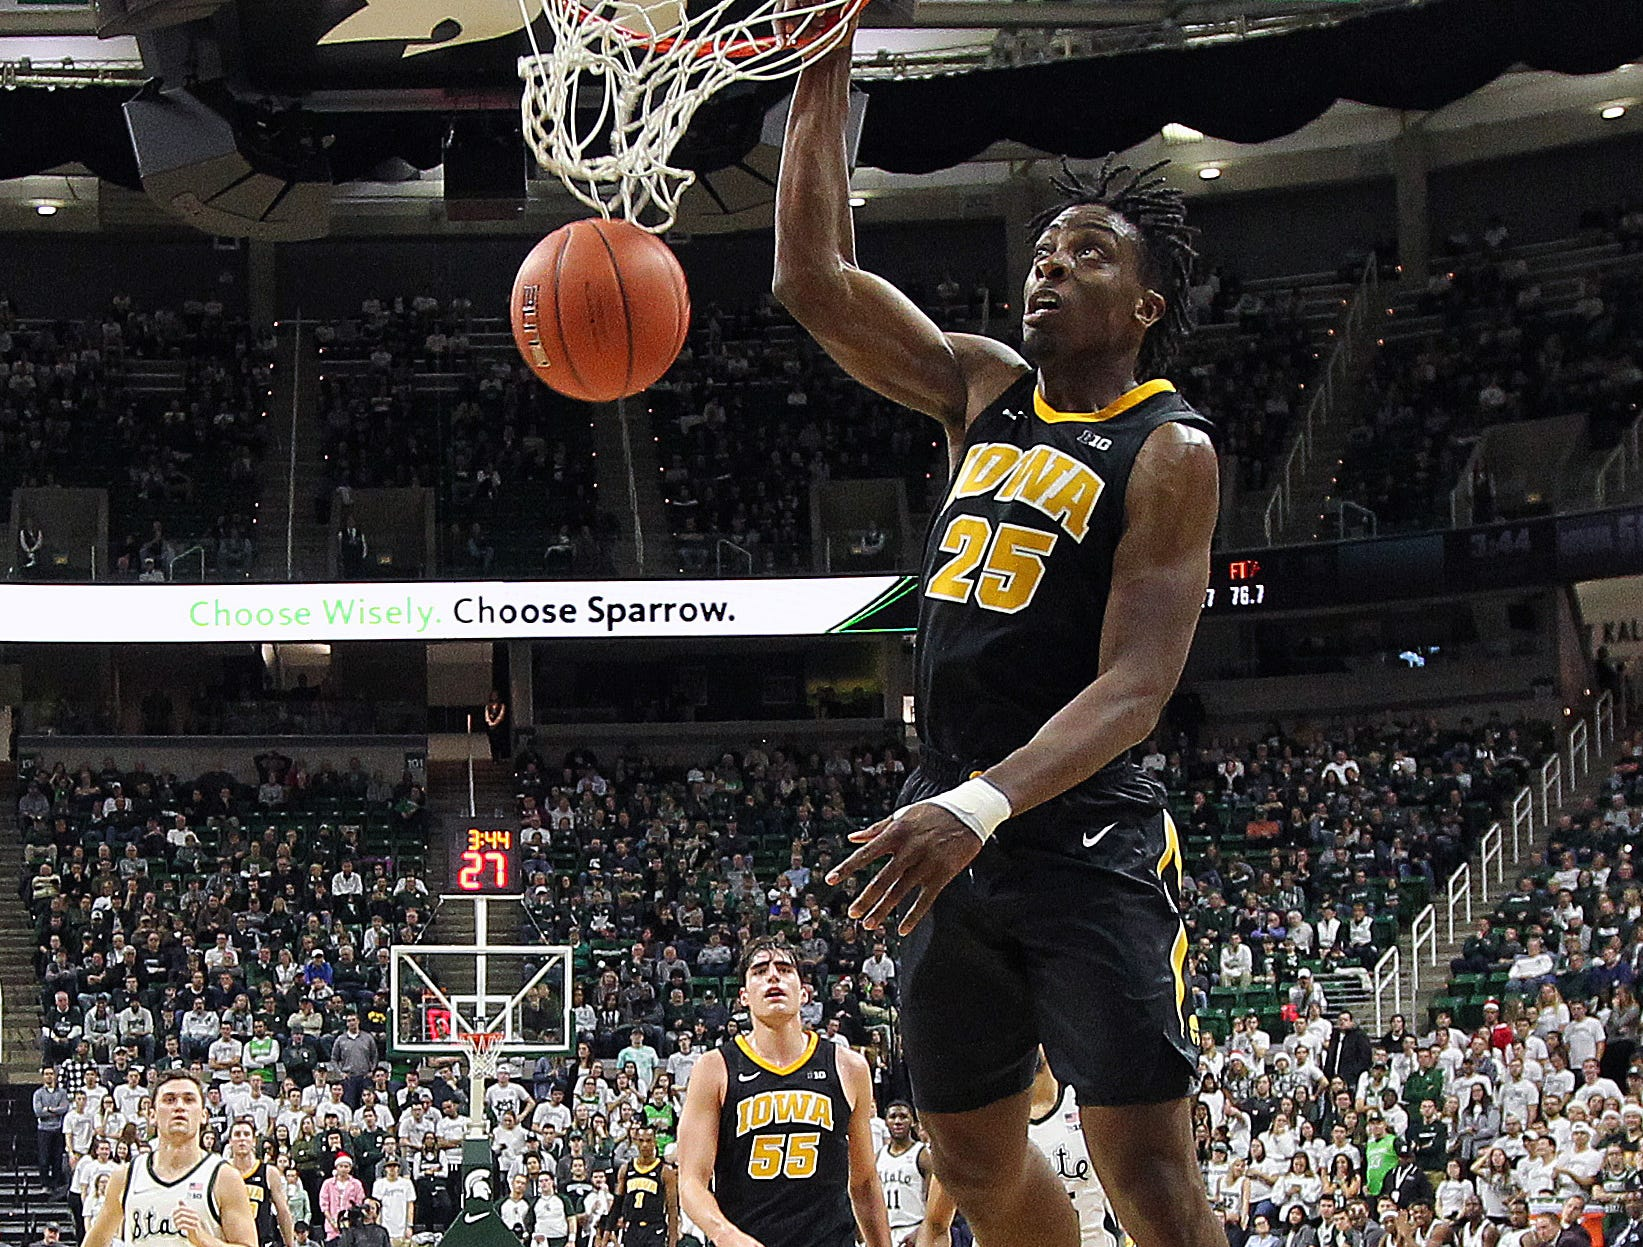 Dec 3, 2018; East Lansing, MI, USA; Iowa Hawkeyes forward Tyler Cook (25) dunks the ball against the Michigan State Spartans during the second half of a game at Breslin Center. Mandatory Credit: Mike Carter-USA TODAY Sports